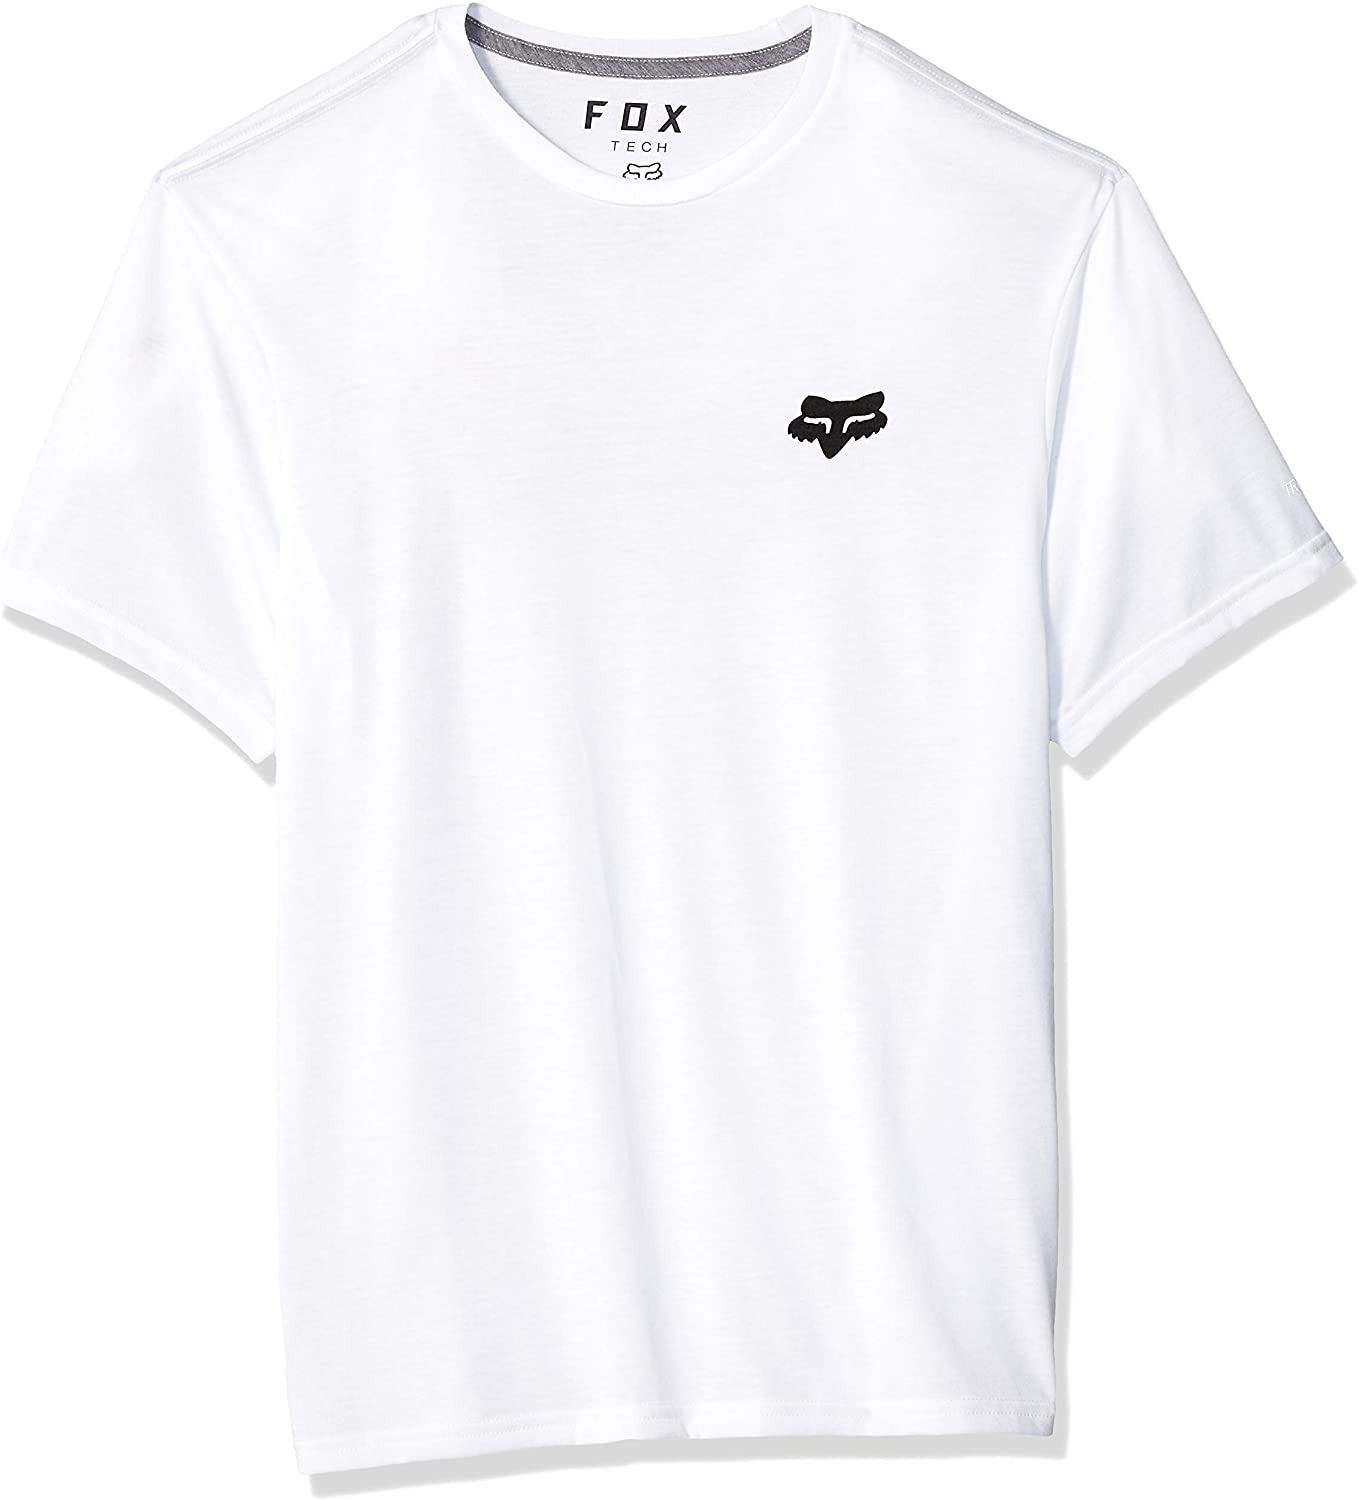 Fox Men's Standard Manifest Short Sleeve Tech T-Shirt